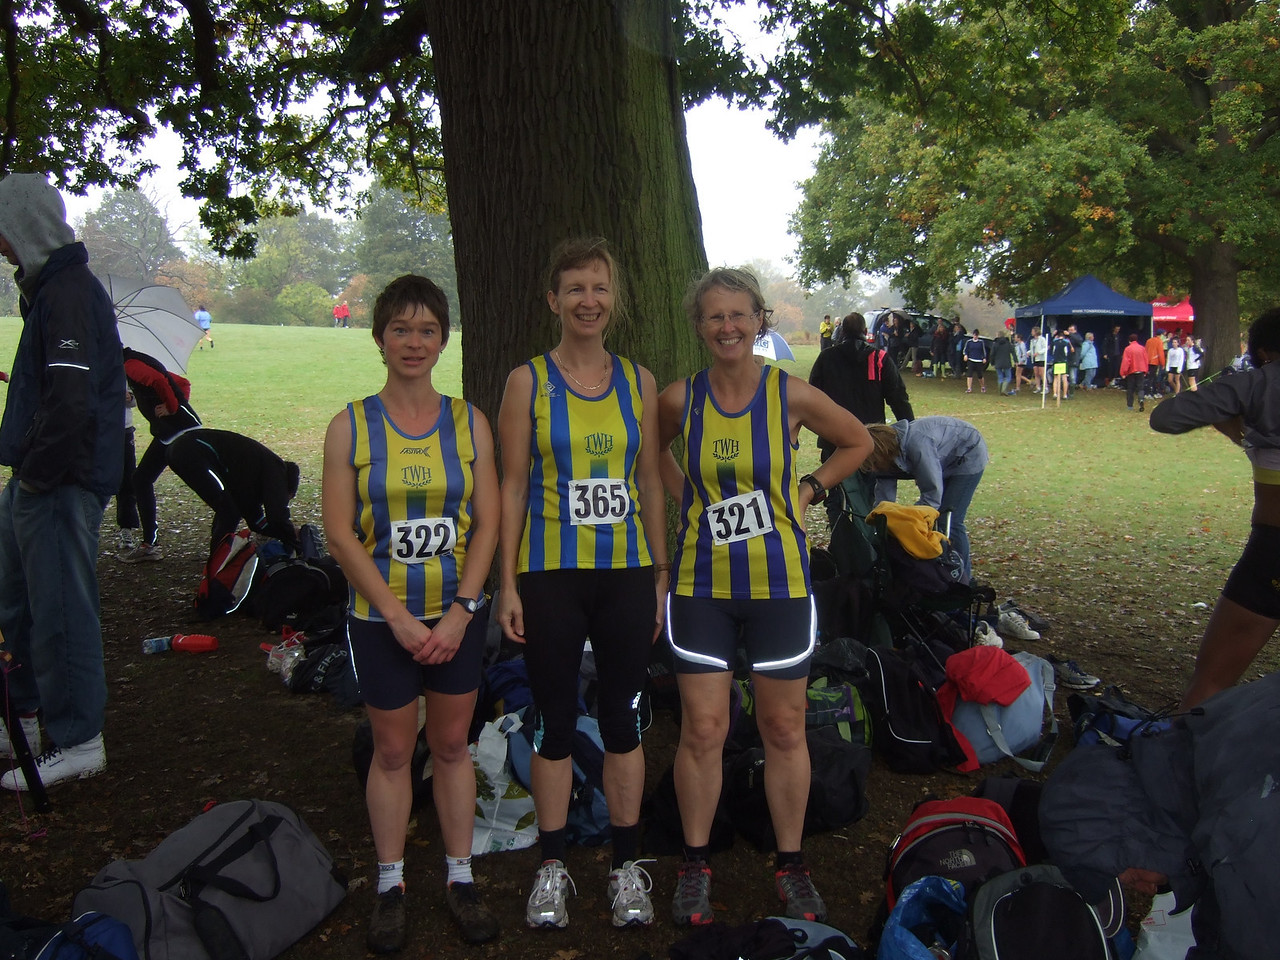 2009_1026KENTLEAGUEXC2410090005